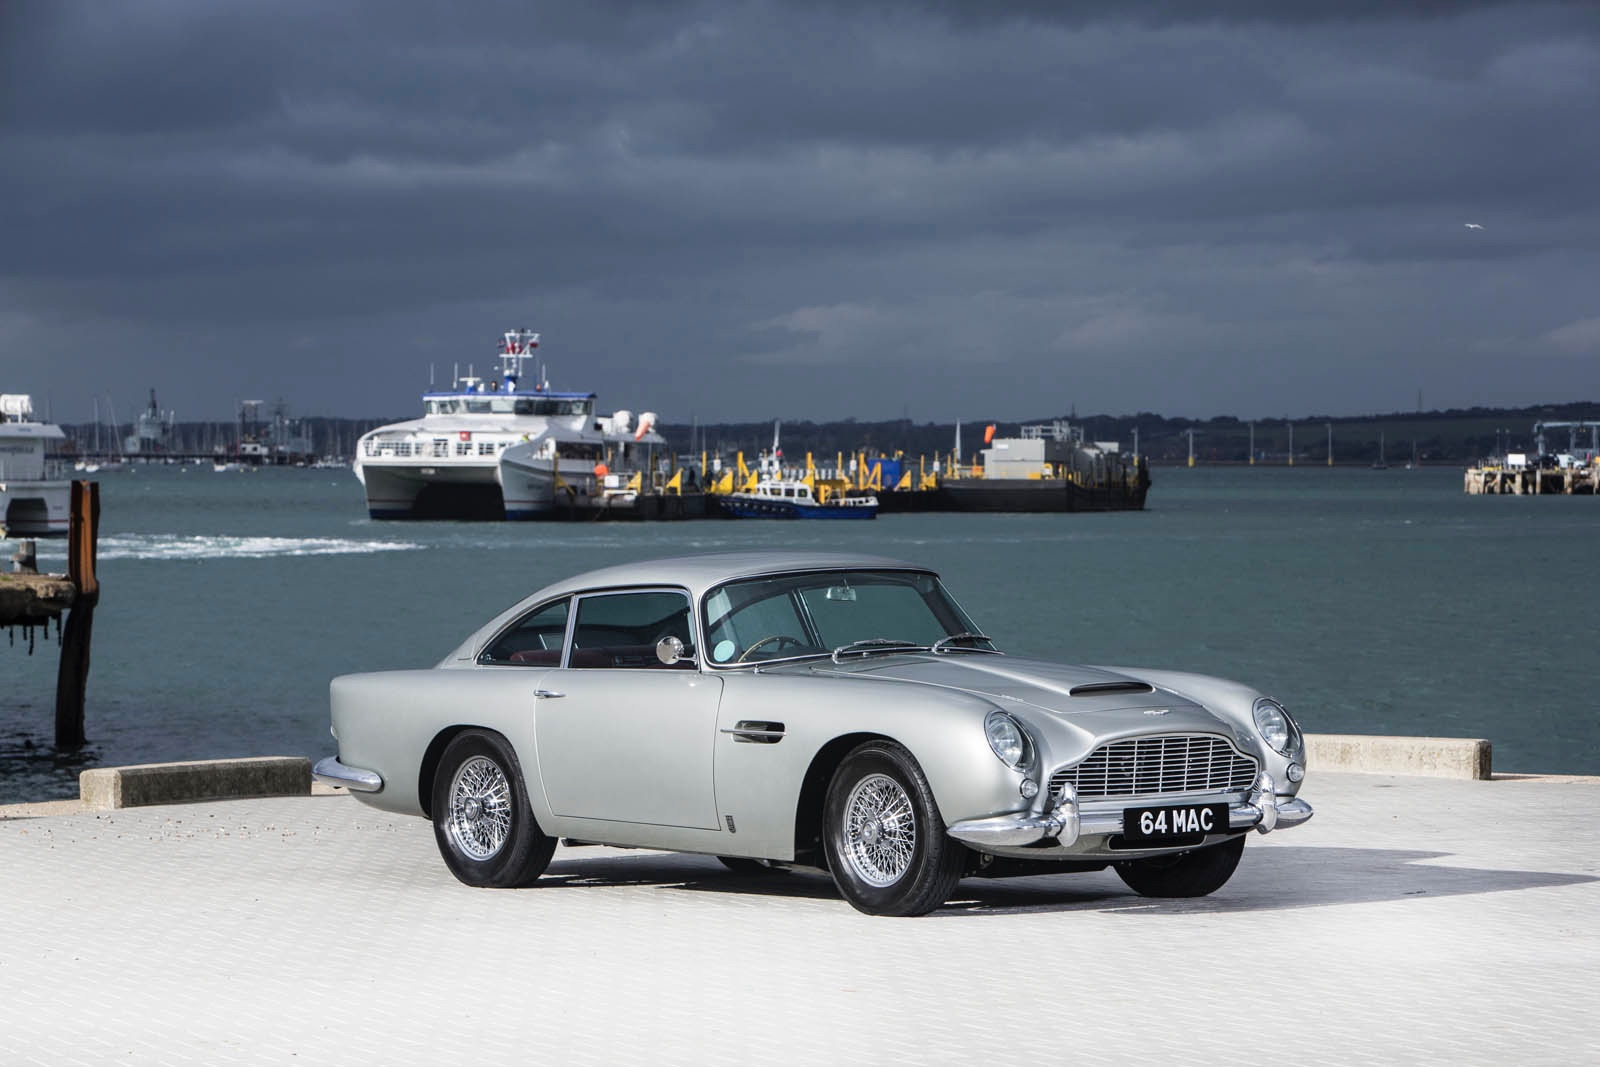 video: paul mccartney's 1964 aston martin db5 to go on auction image - 1